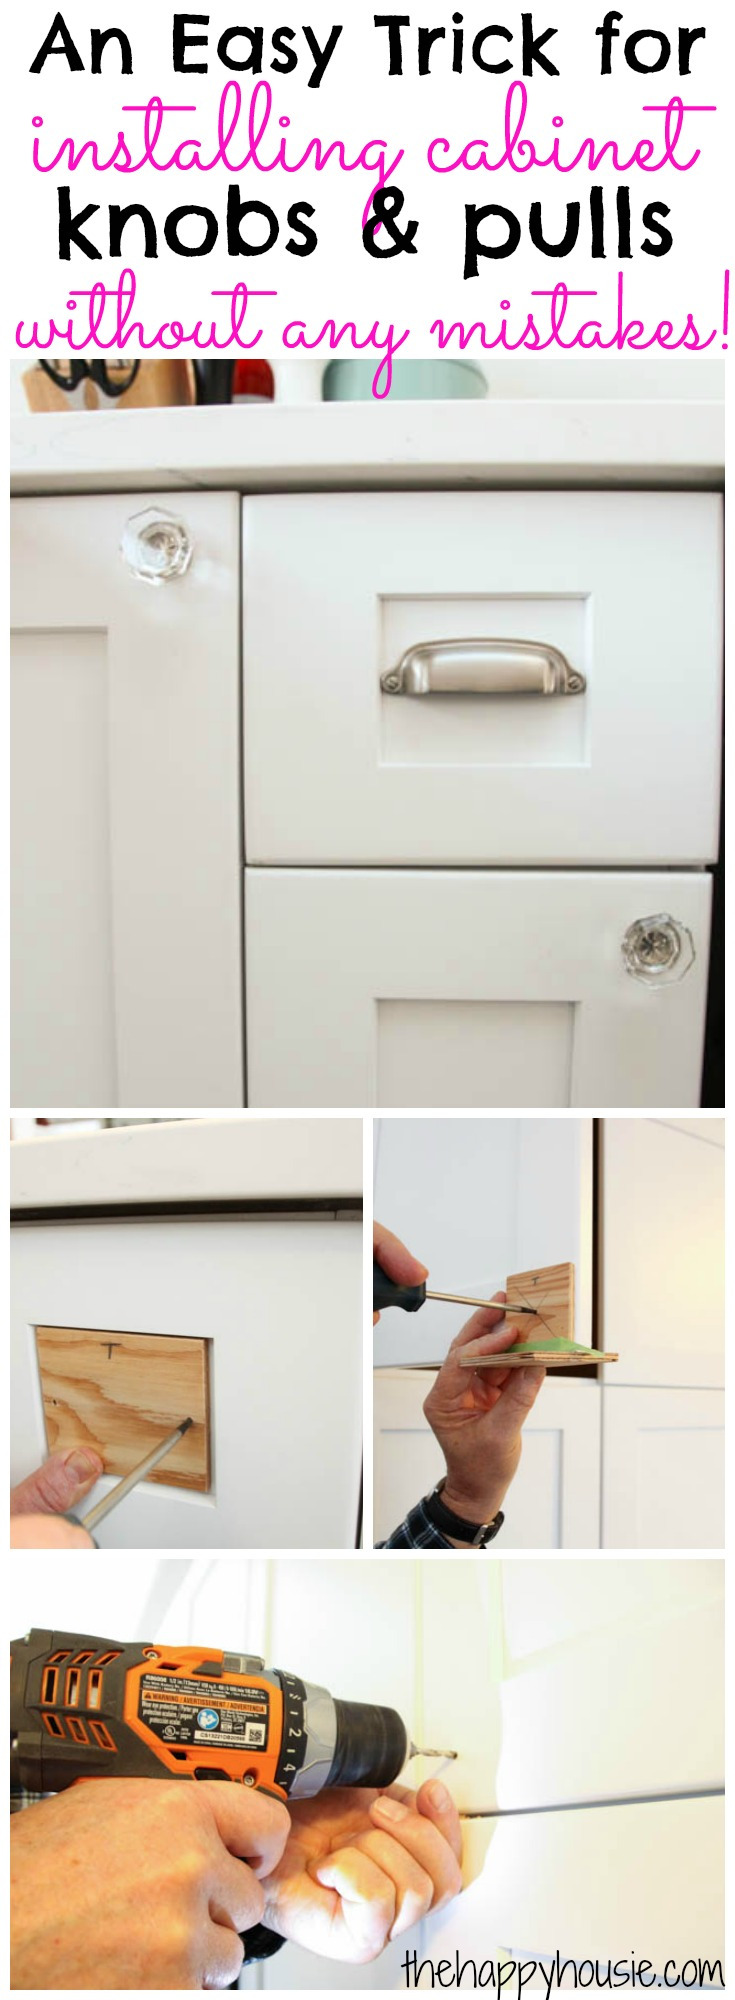 How to Install Cabinet Doors Beautiful How to Install Cabinet Knobs with A Template A Trick for